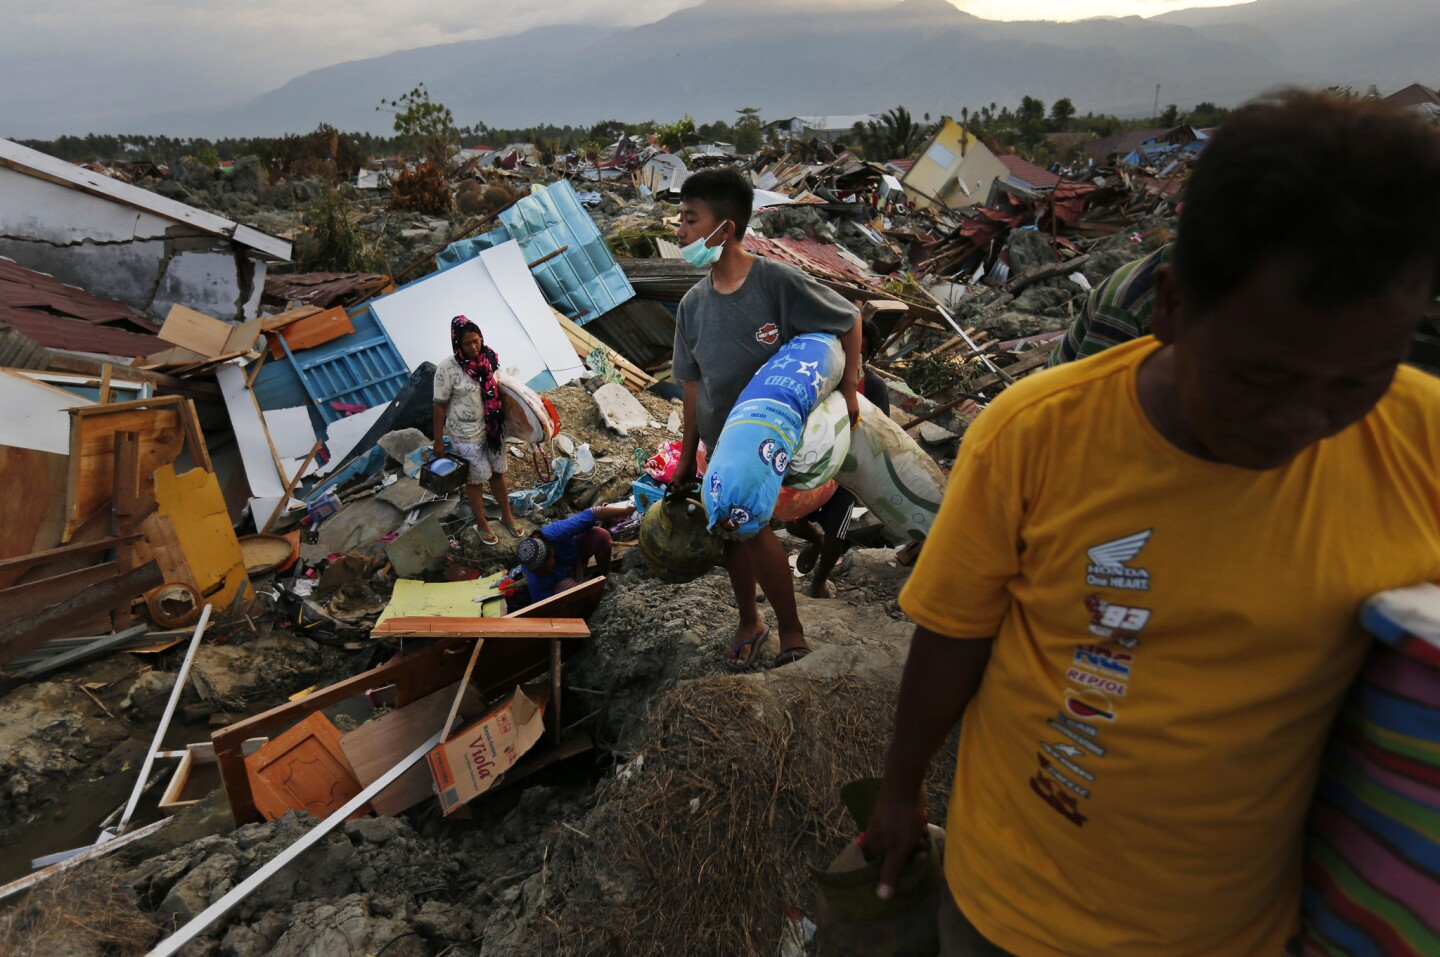 In this Friday, Oct. 5, 2018, photo, a family carries salvageable items they scavenged from the ruins of their house in the Petobo neighborhood which was wiped out by liquefaction caused by an earthquake in Palu, Central Sulawesi, Indonesia.